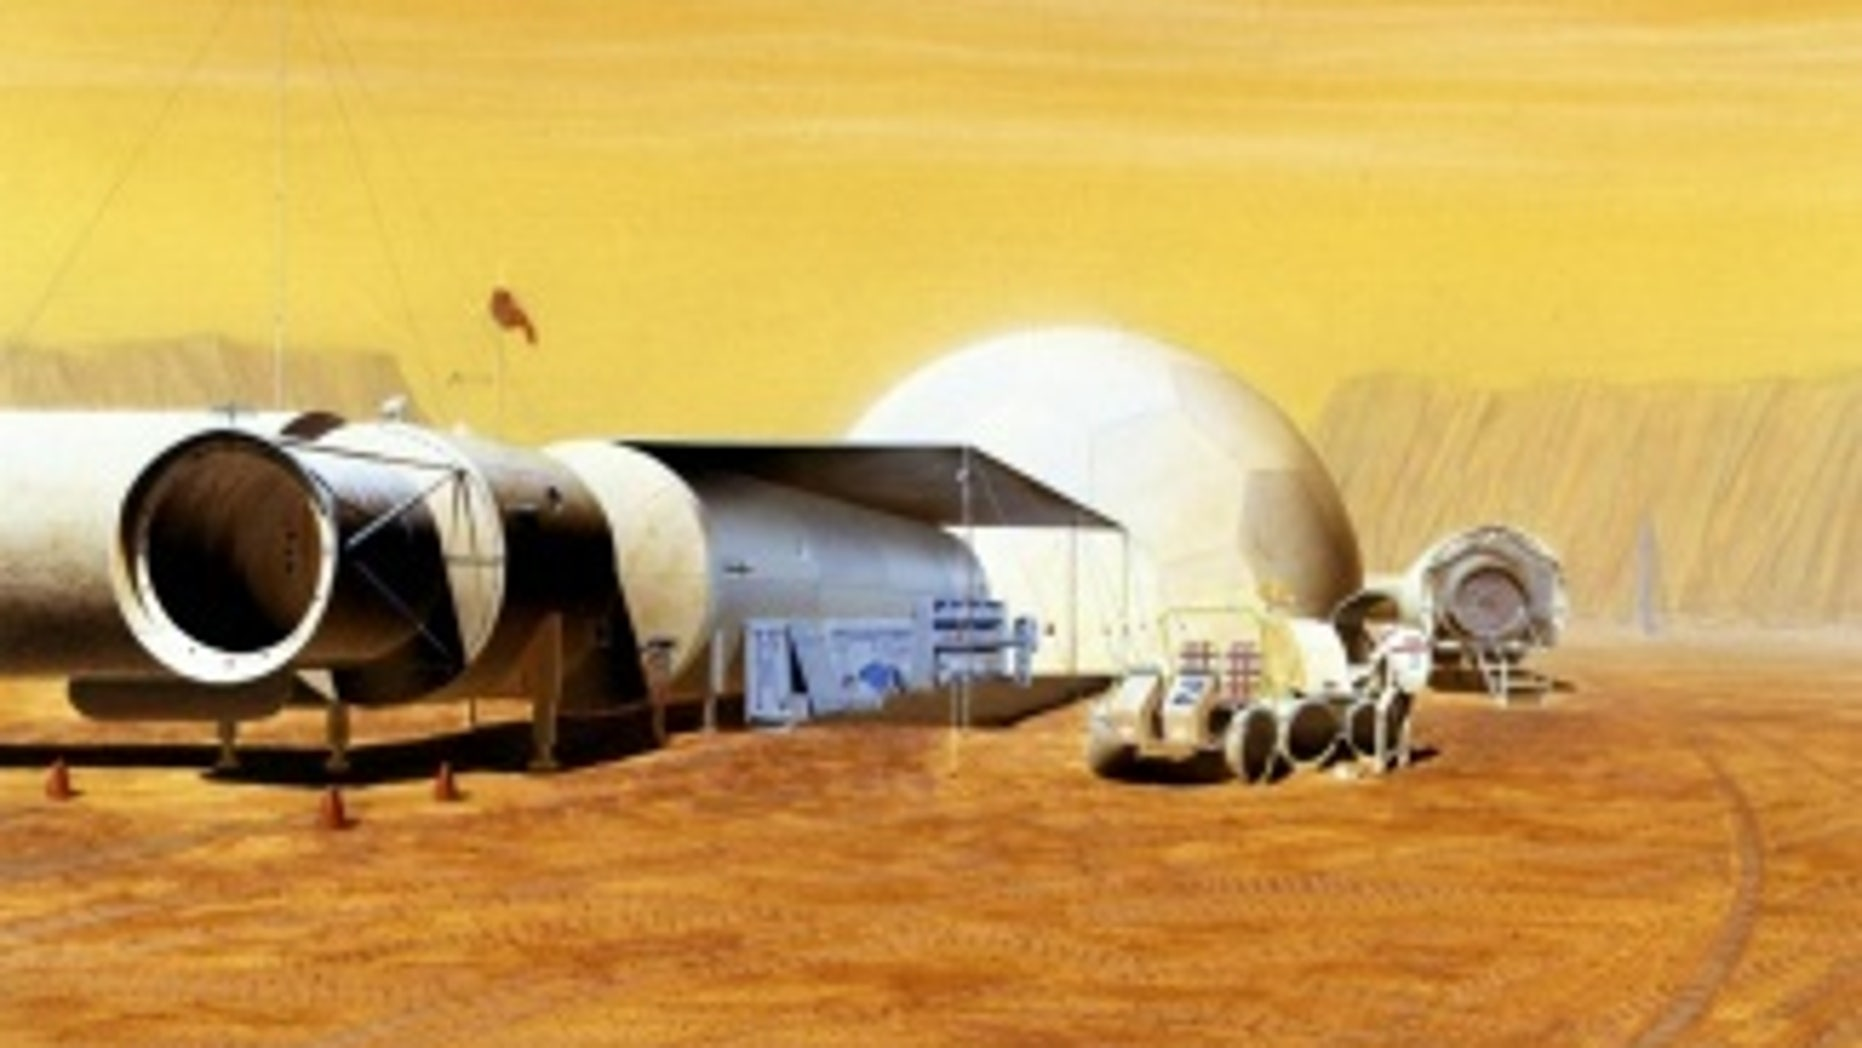 An inflatable structure would be ideal for the months-long journey to Mars.